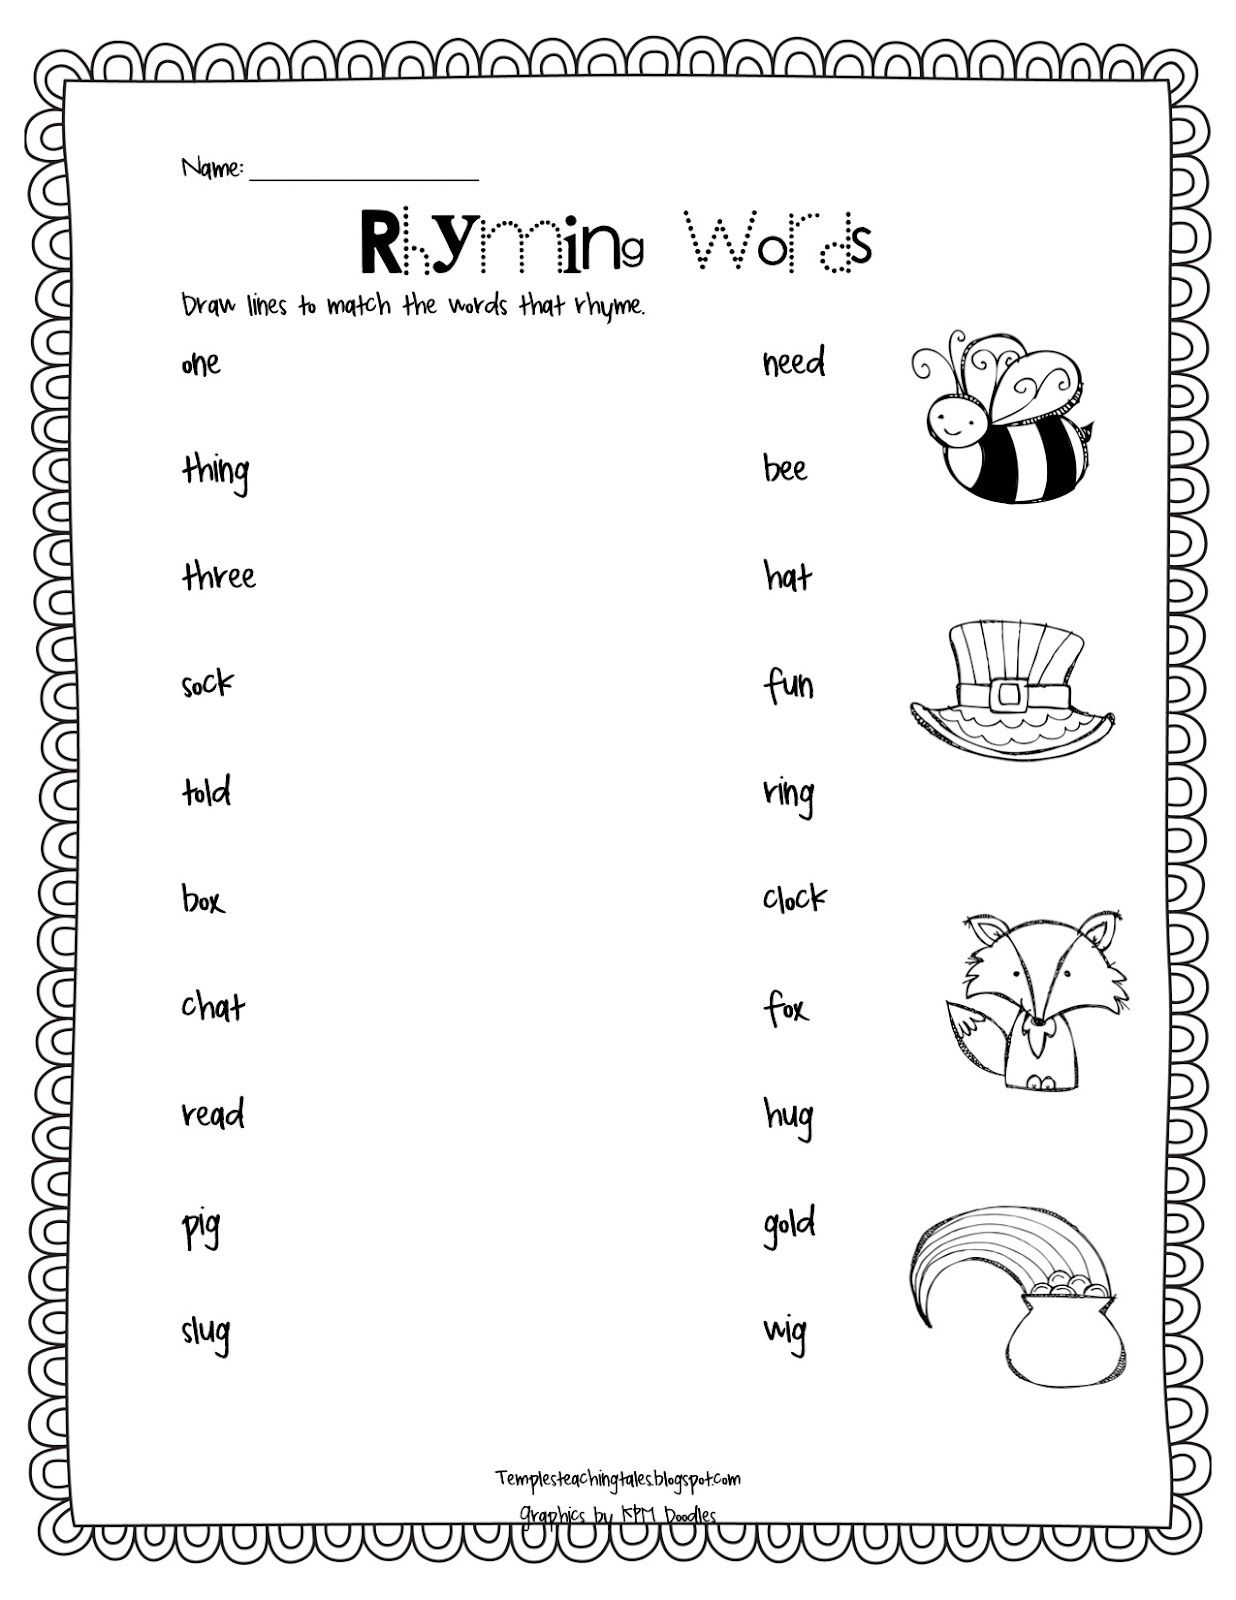 Printables Free Rhyming Worksheets kindergarten rhyming words worksheets davezan scalien